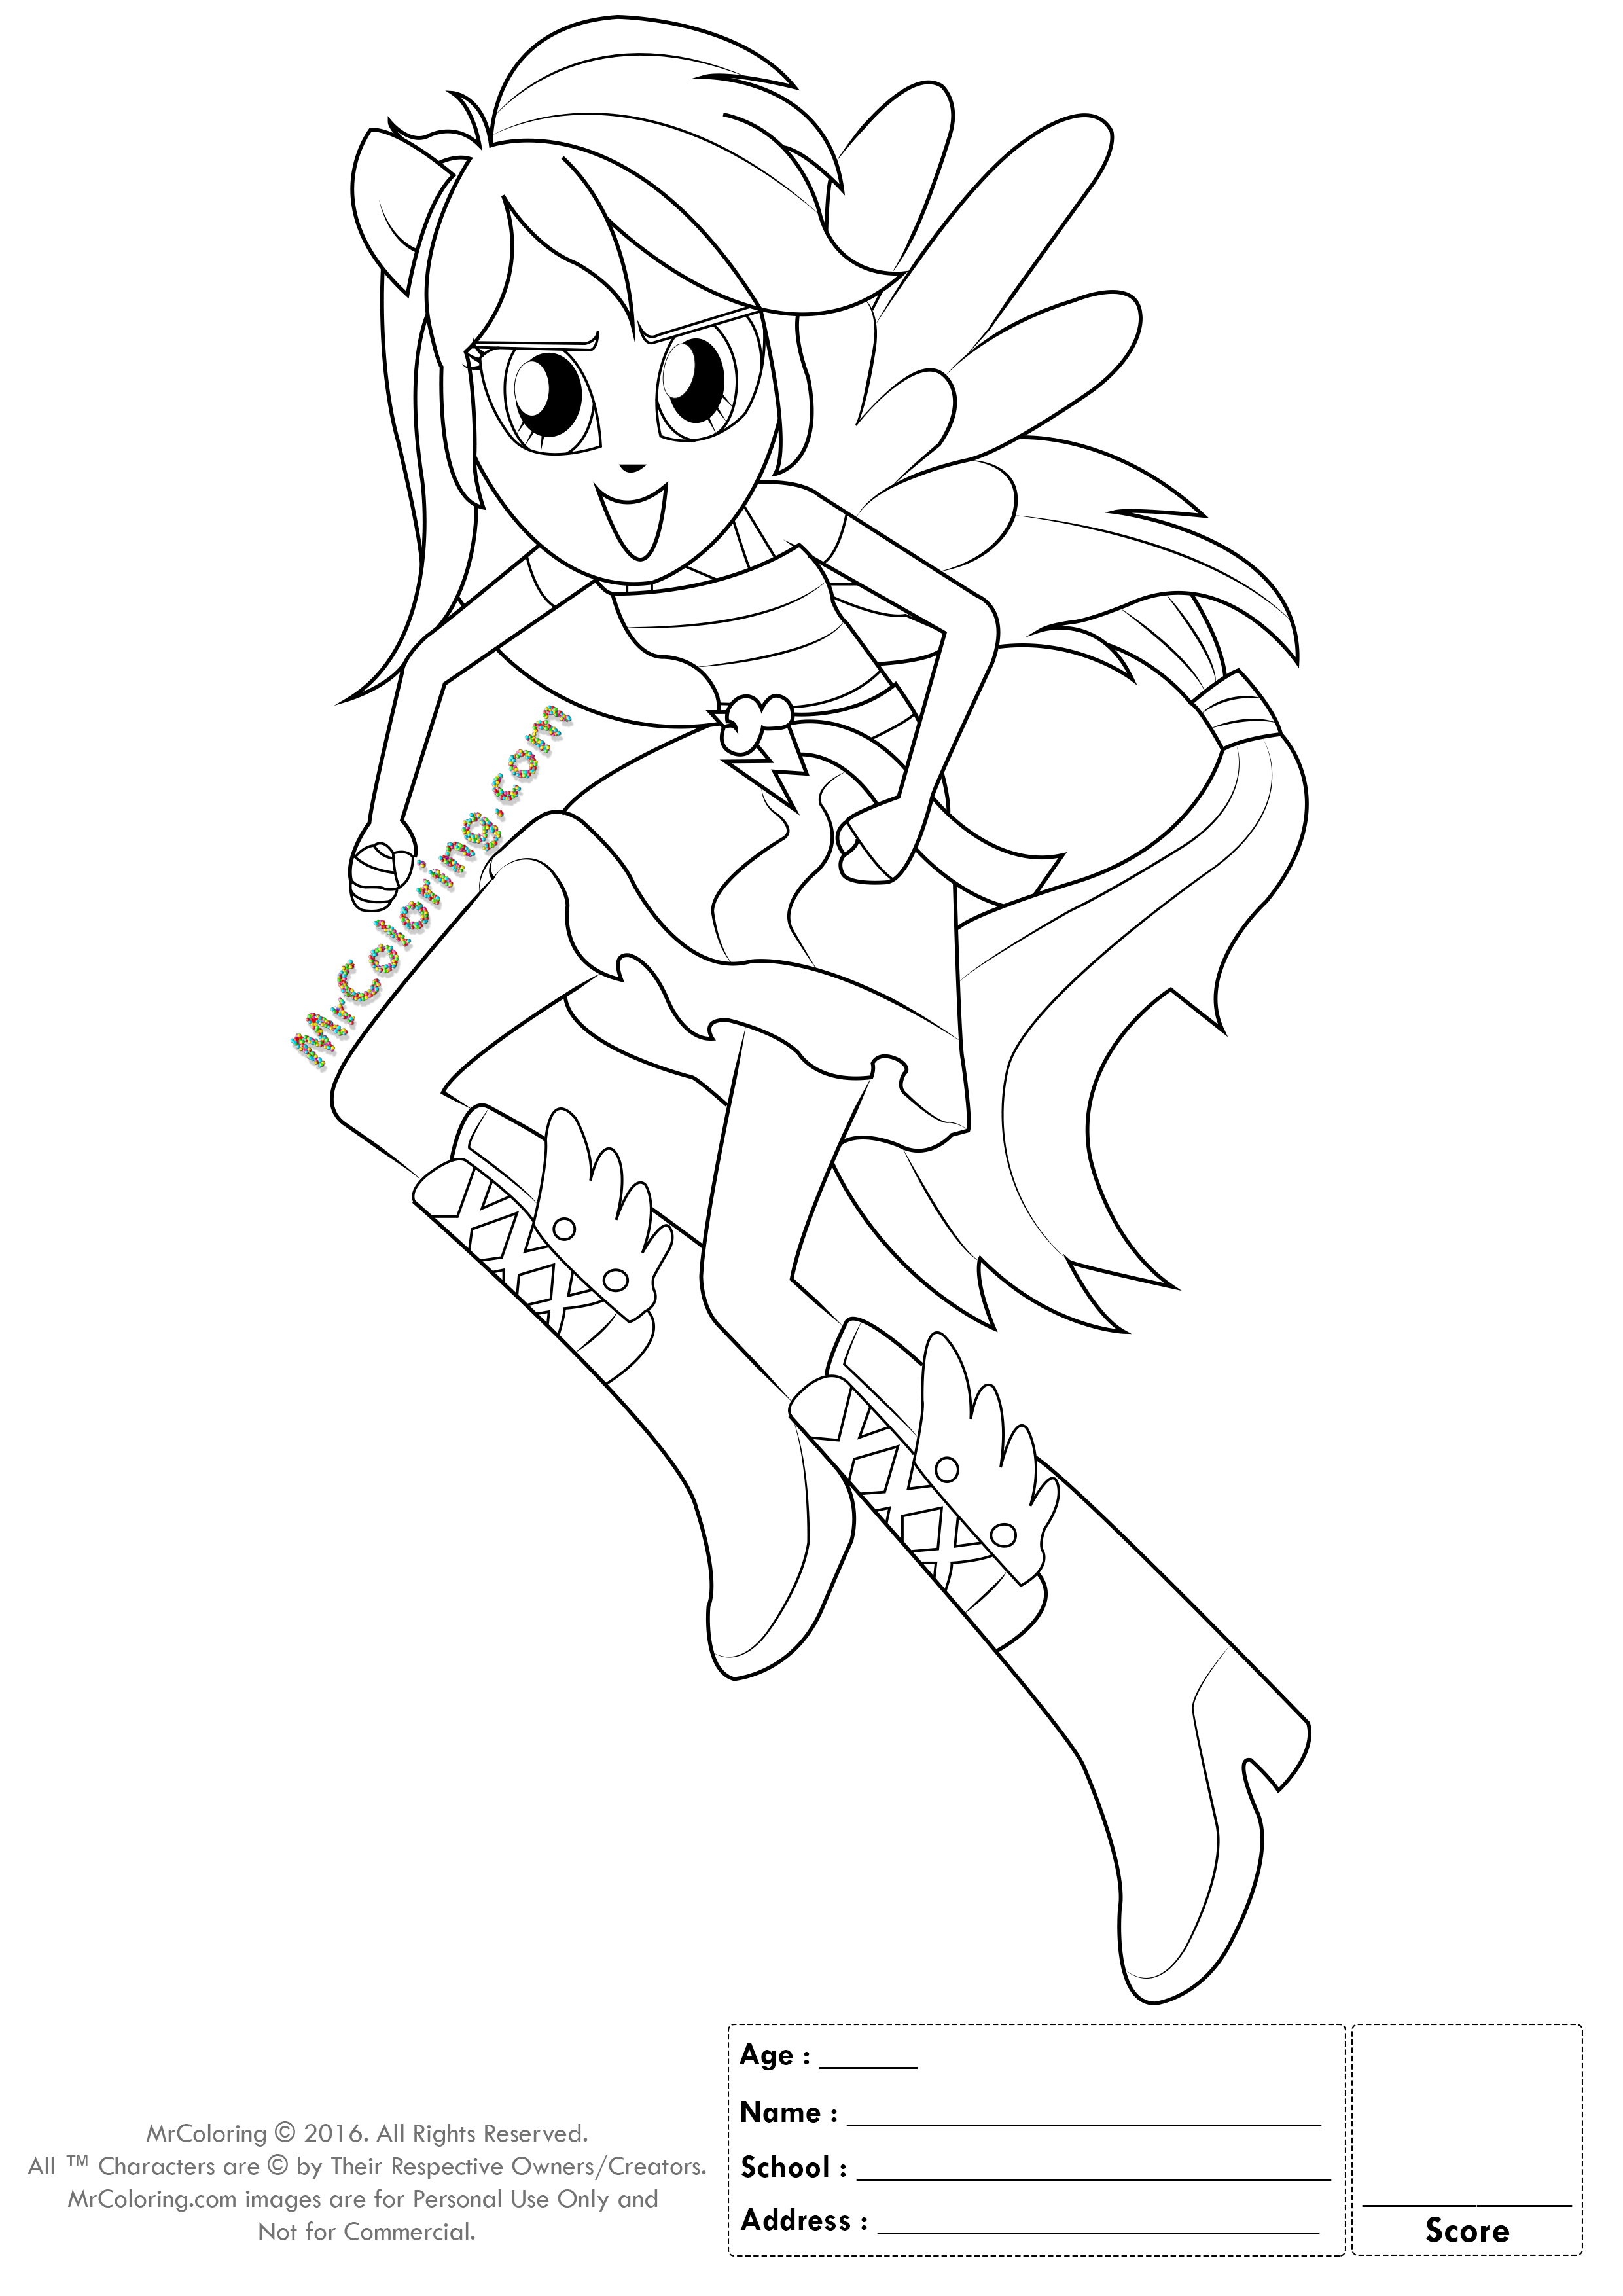 MLP Rainbow Dash Equestria Girls Coloring Pages - 2 | MrColoring.com